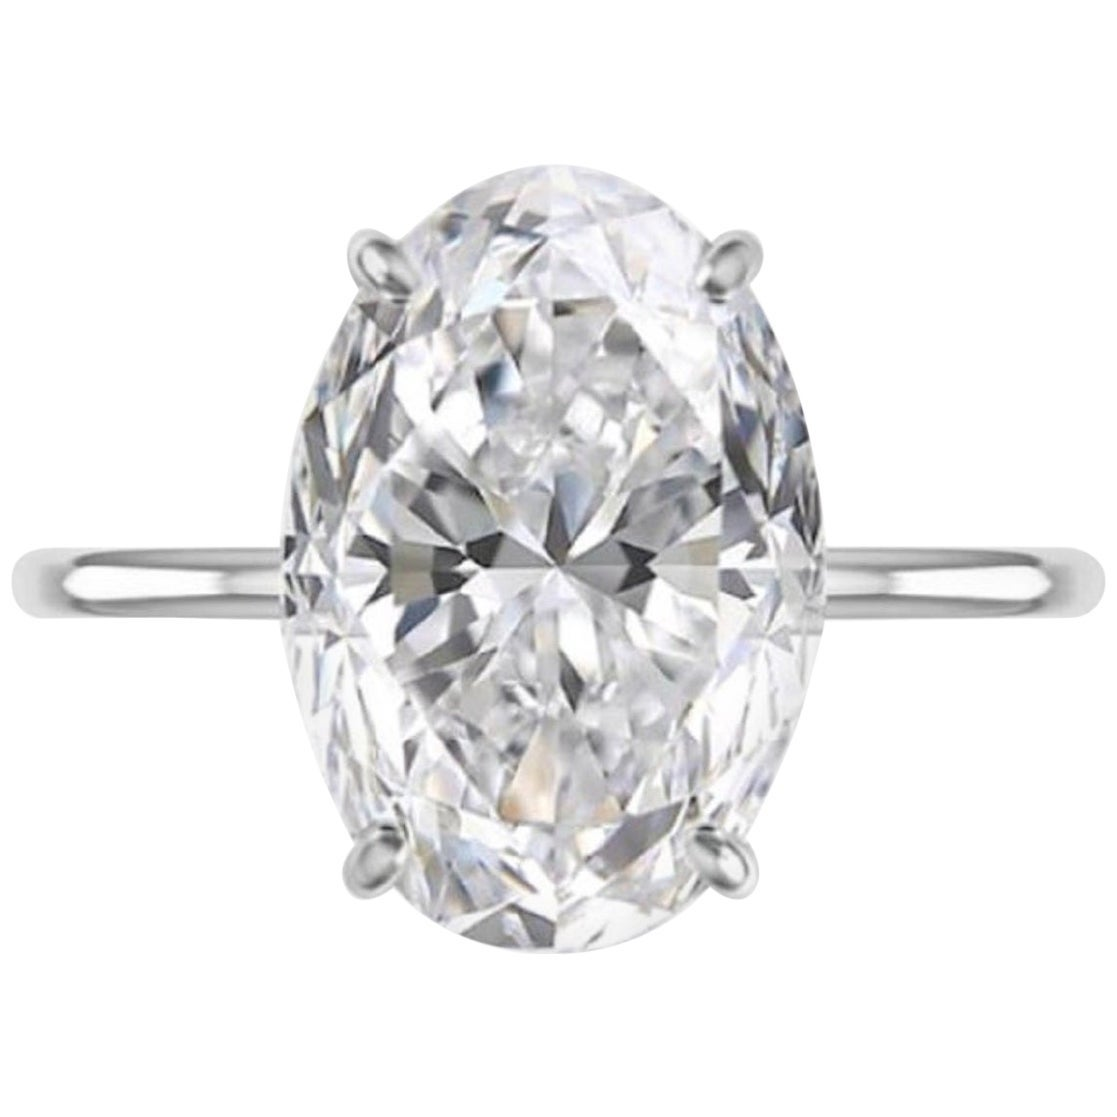 GIA Certified 2.09 Carat Oval Diamond Platinum Solitaire Ring E Color VS1